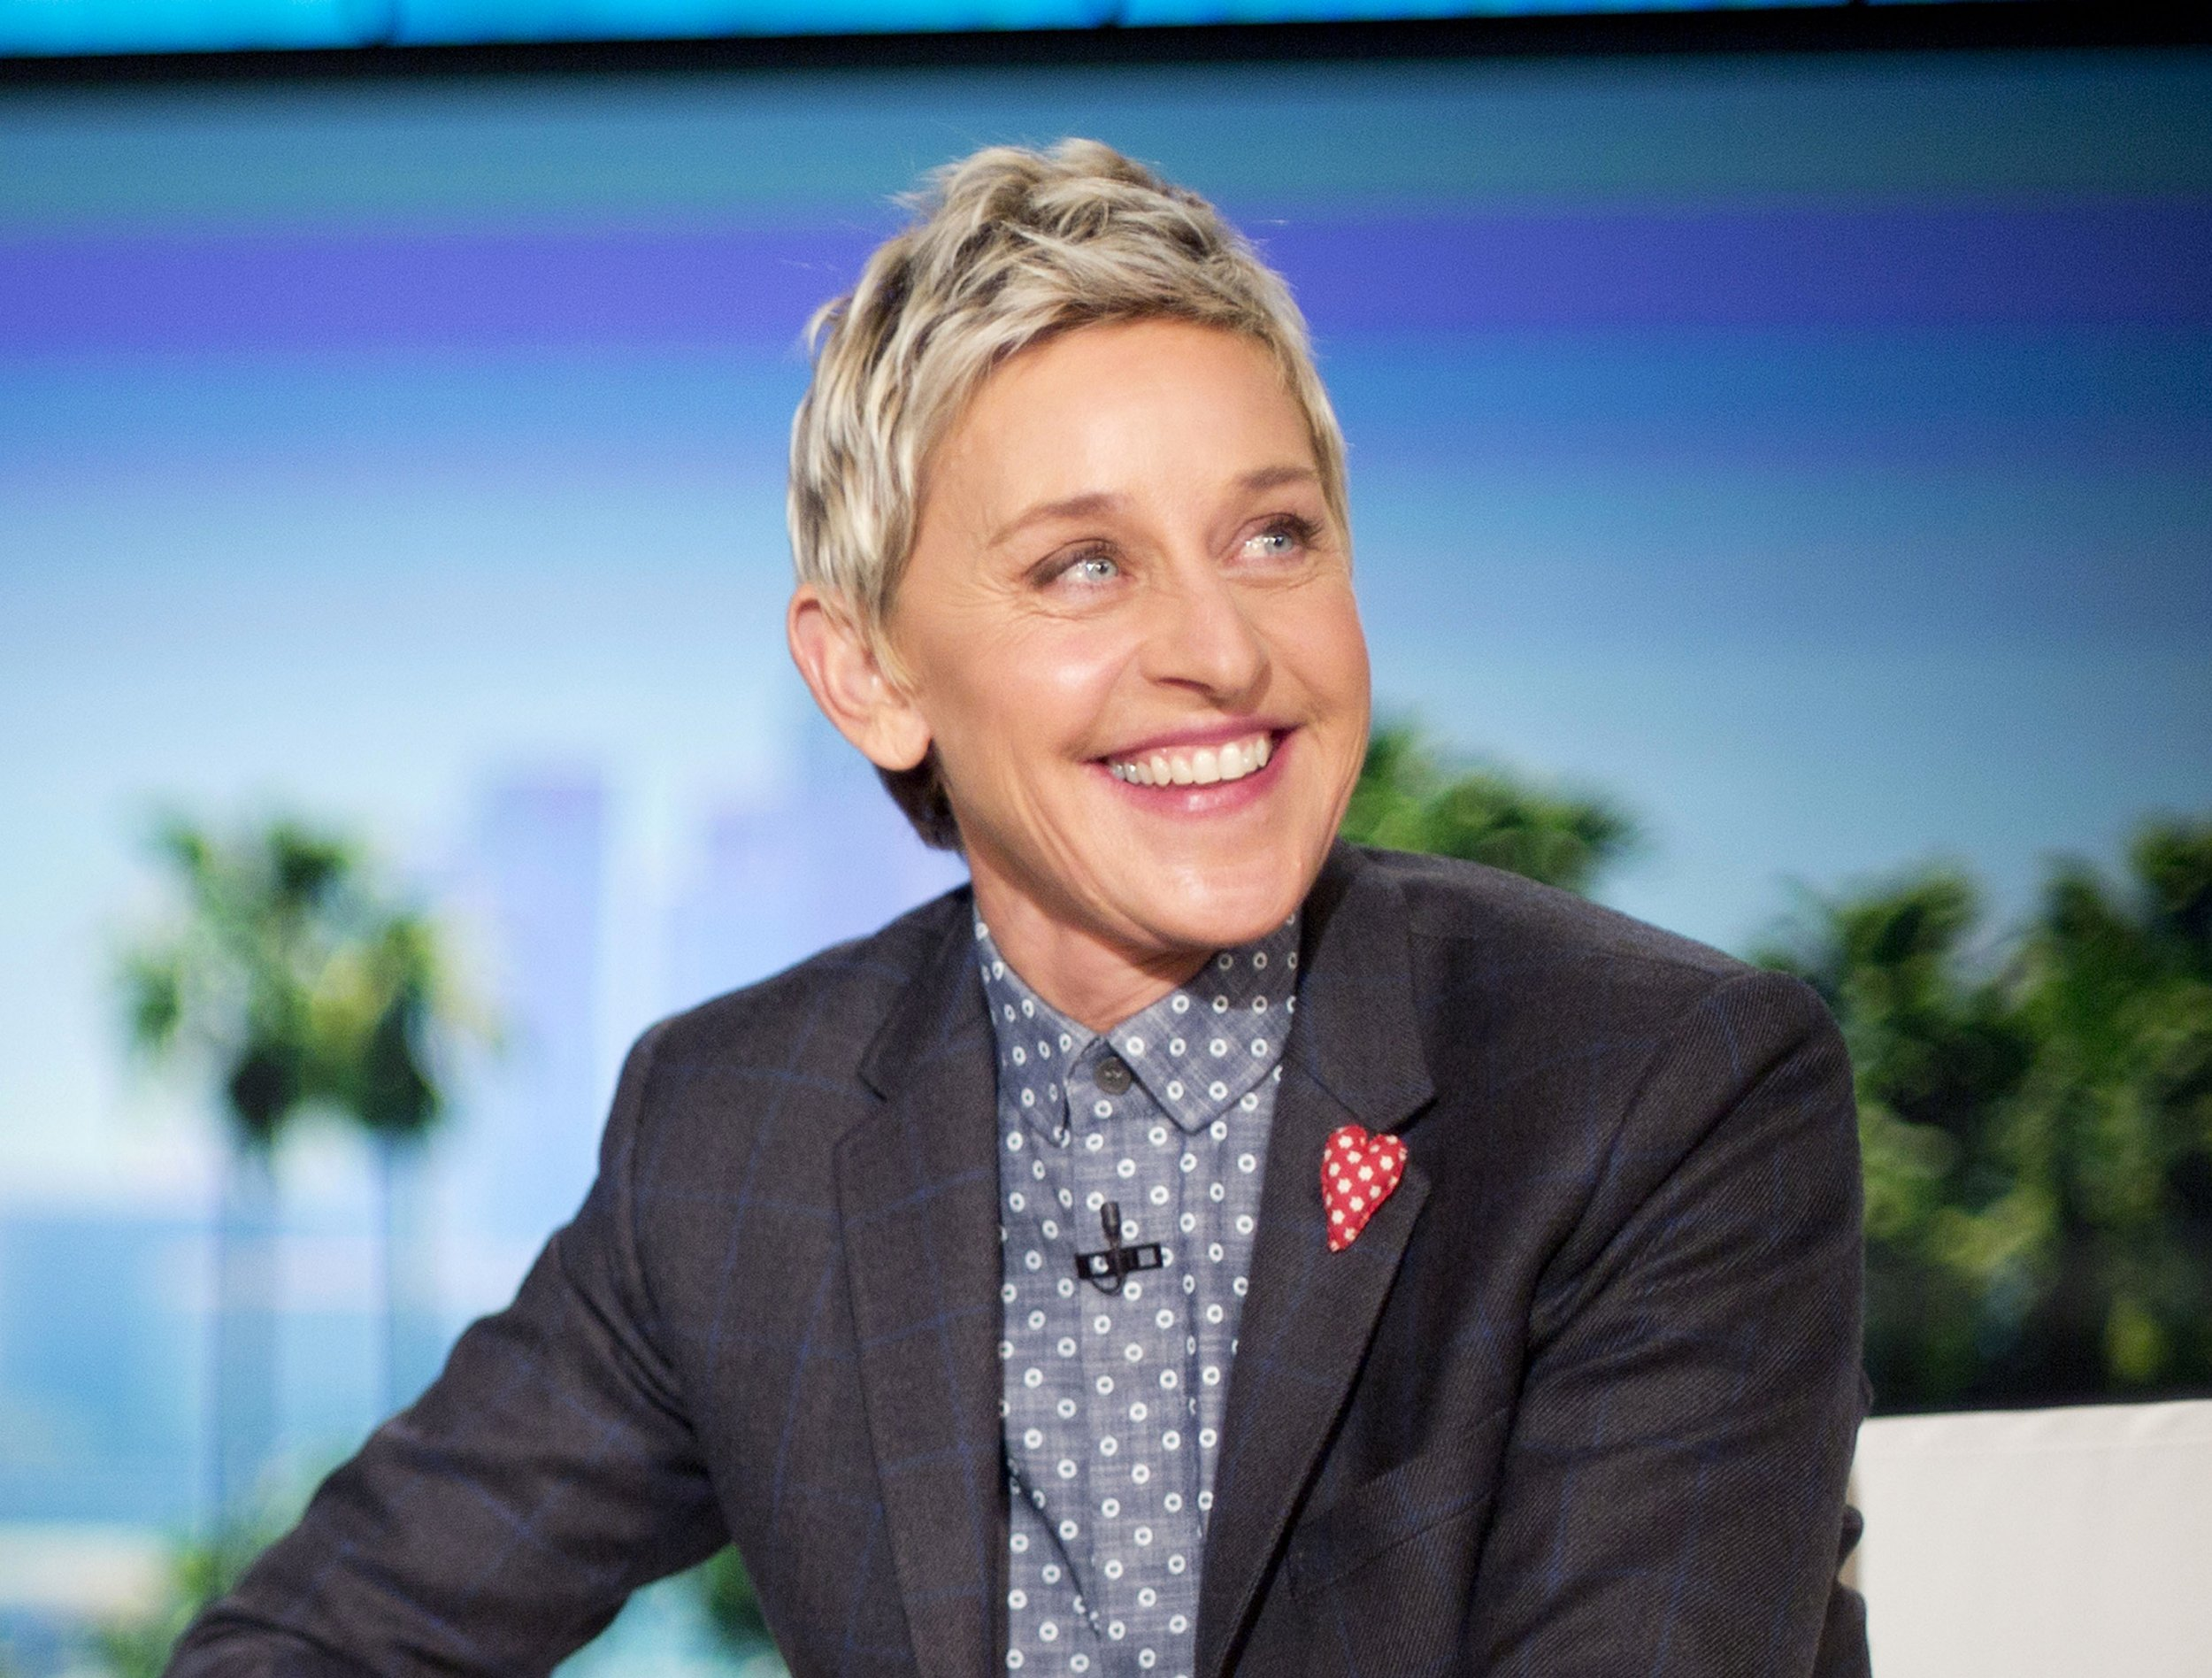 Ellen DeGeneres aced the mannequin challenge with Robert De Niro and Tom Hanks in the White House